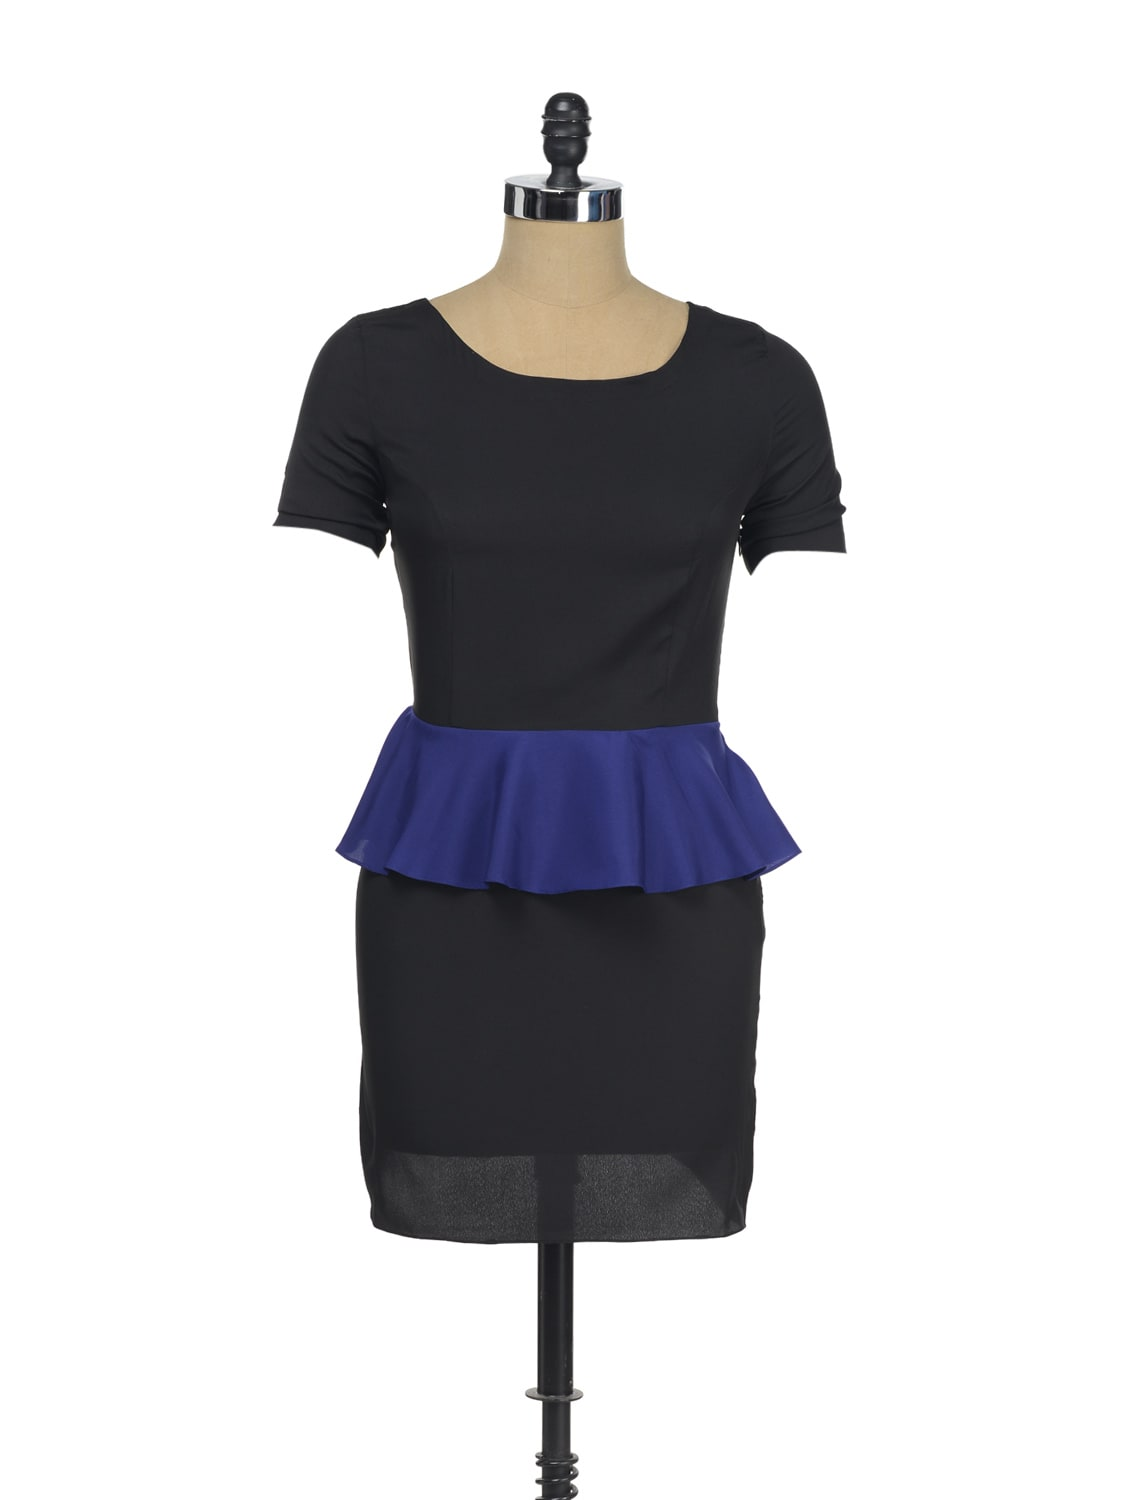 Black Dress With Violet Peplum - I KNOW By Timsy & Siddhartha